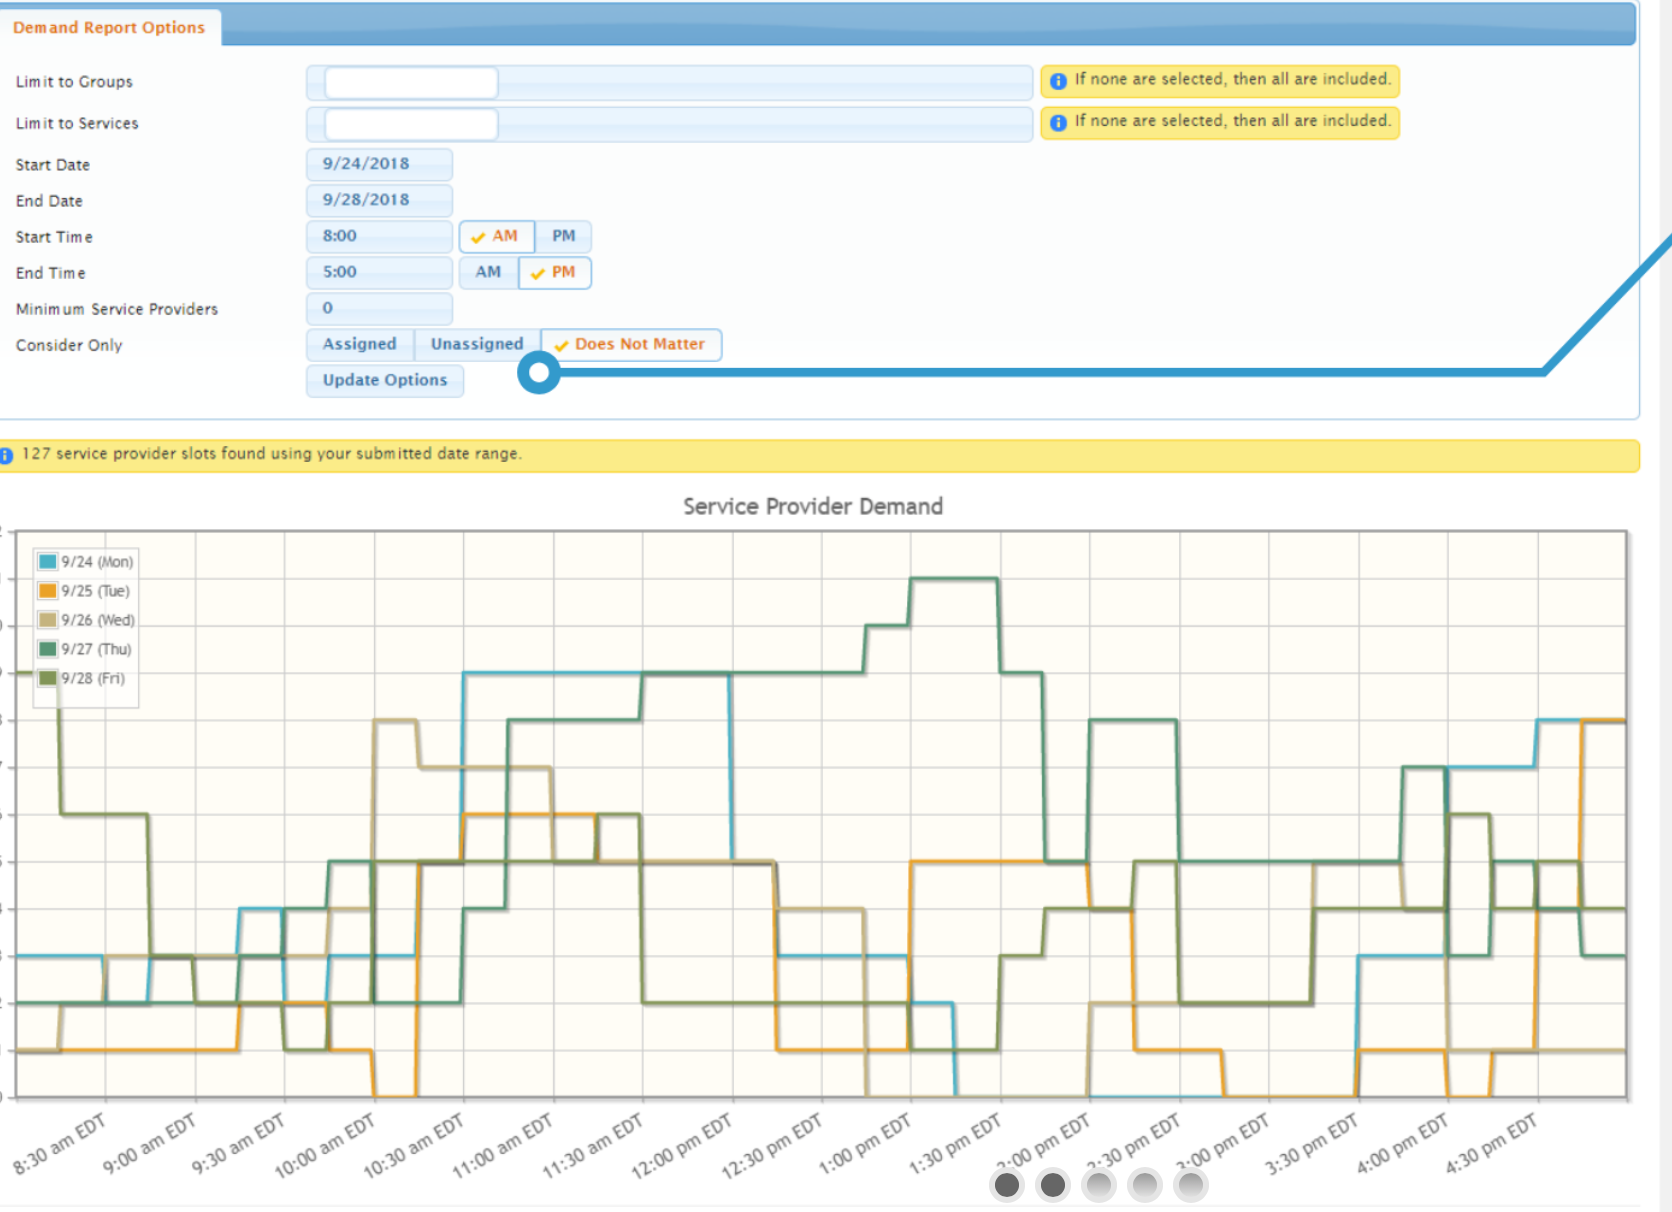 Custom reports can be generated including reports on service provider demand over time